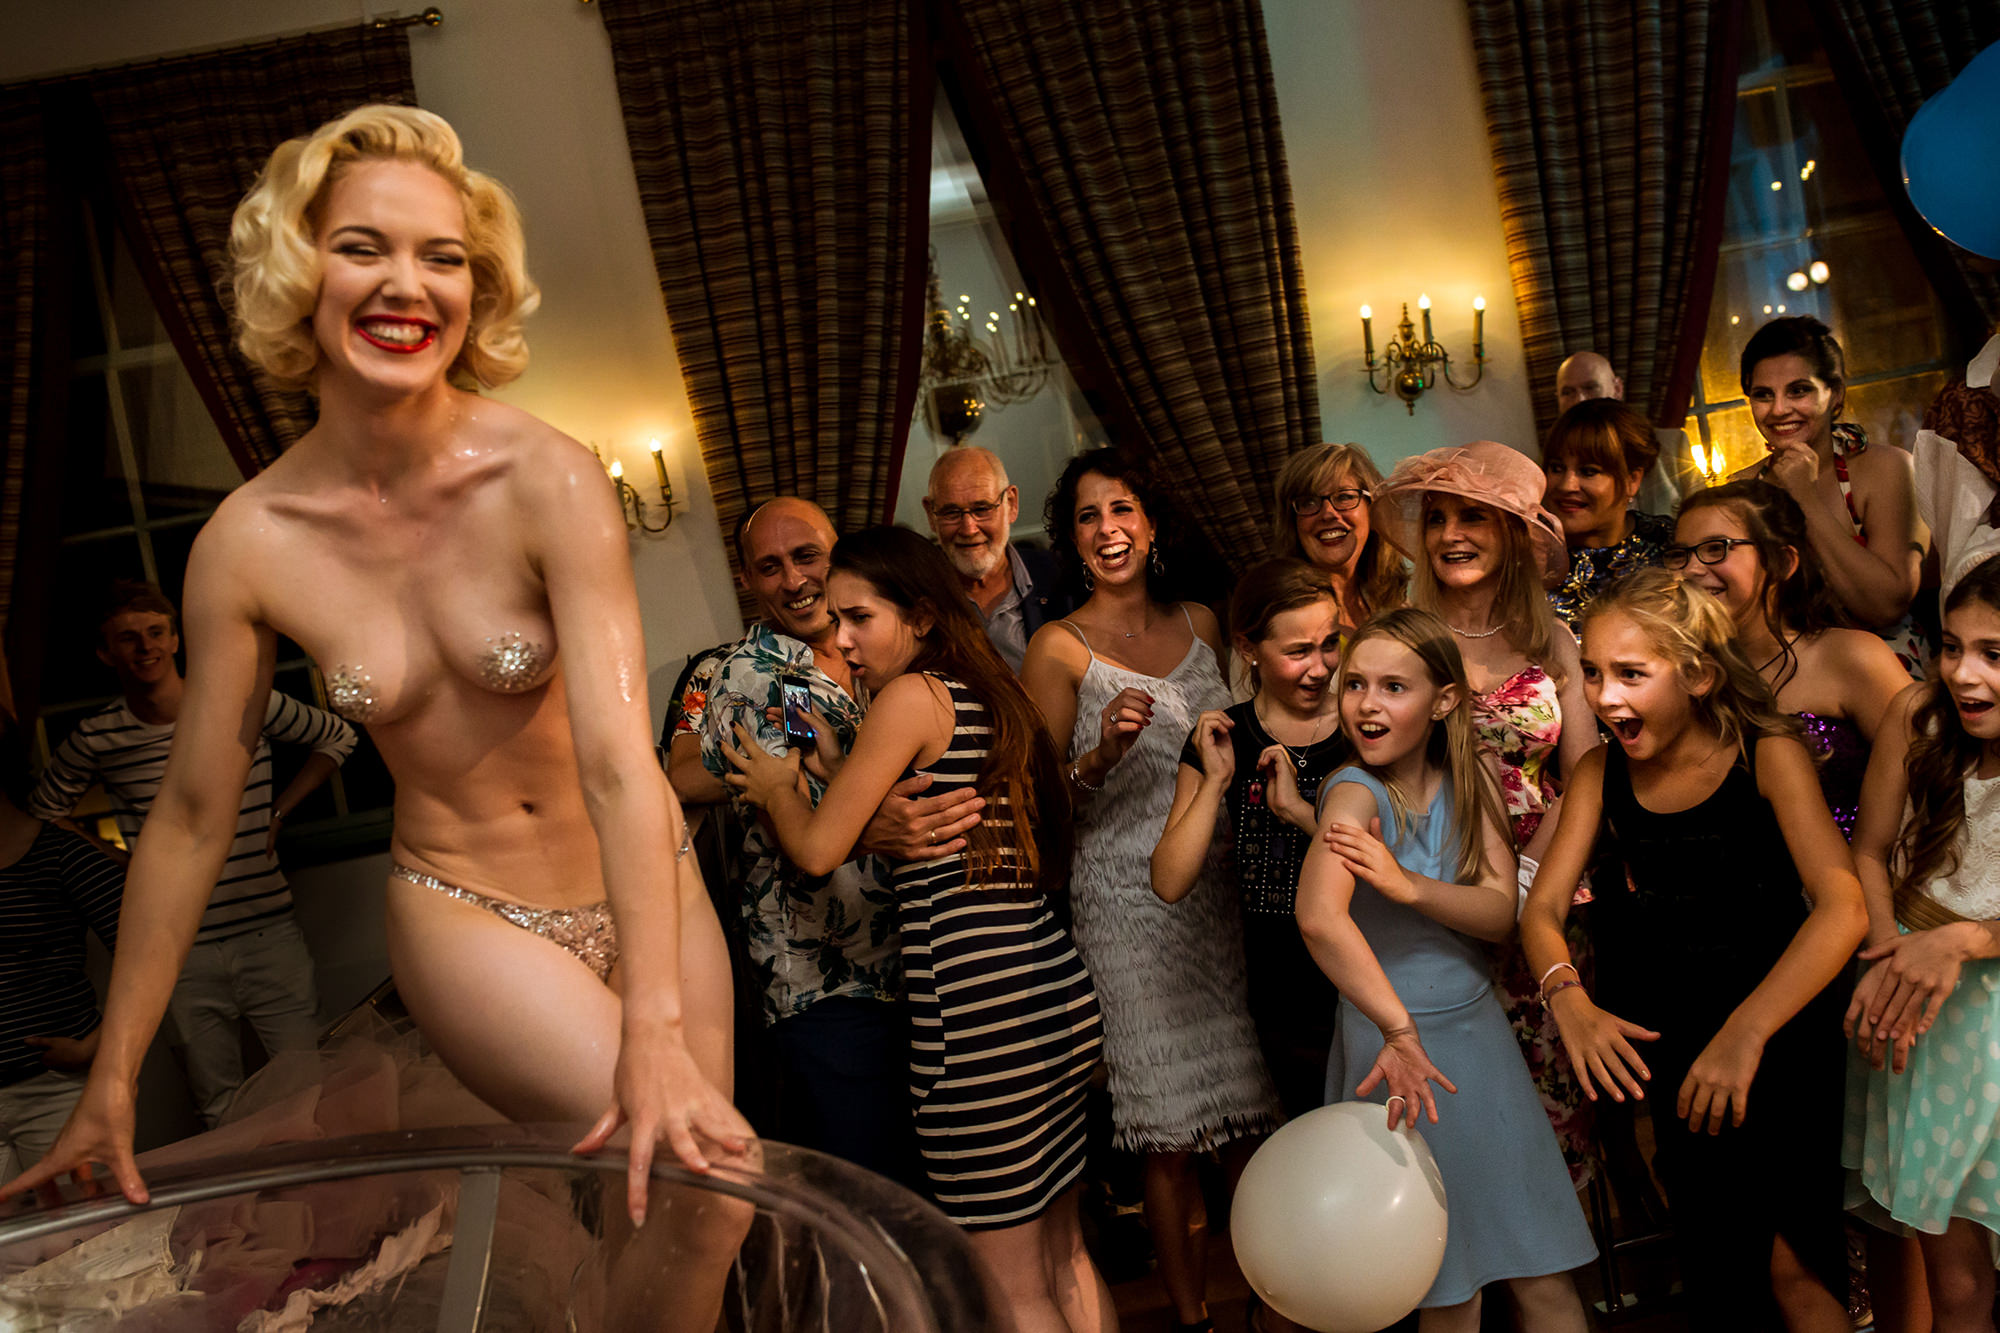 Guests and young girls react to burlesque dancer photo by Fotobelle: Isabelle Hattink